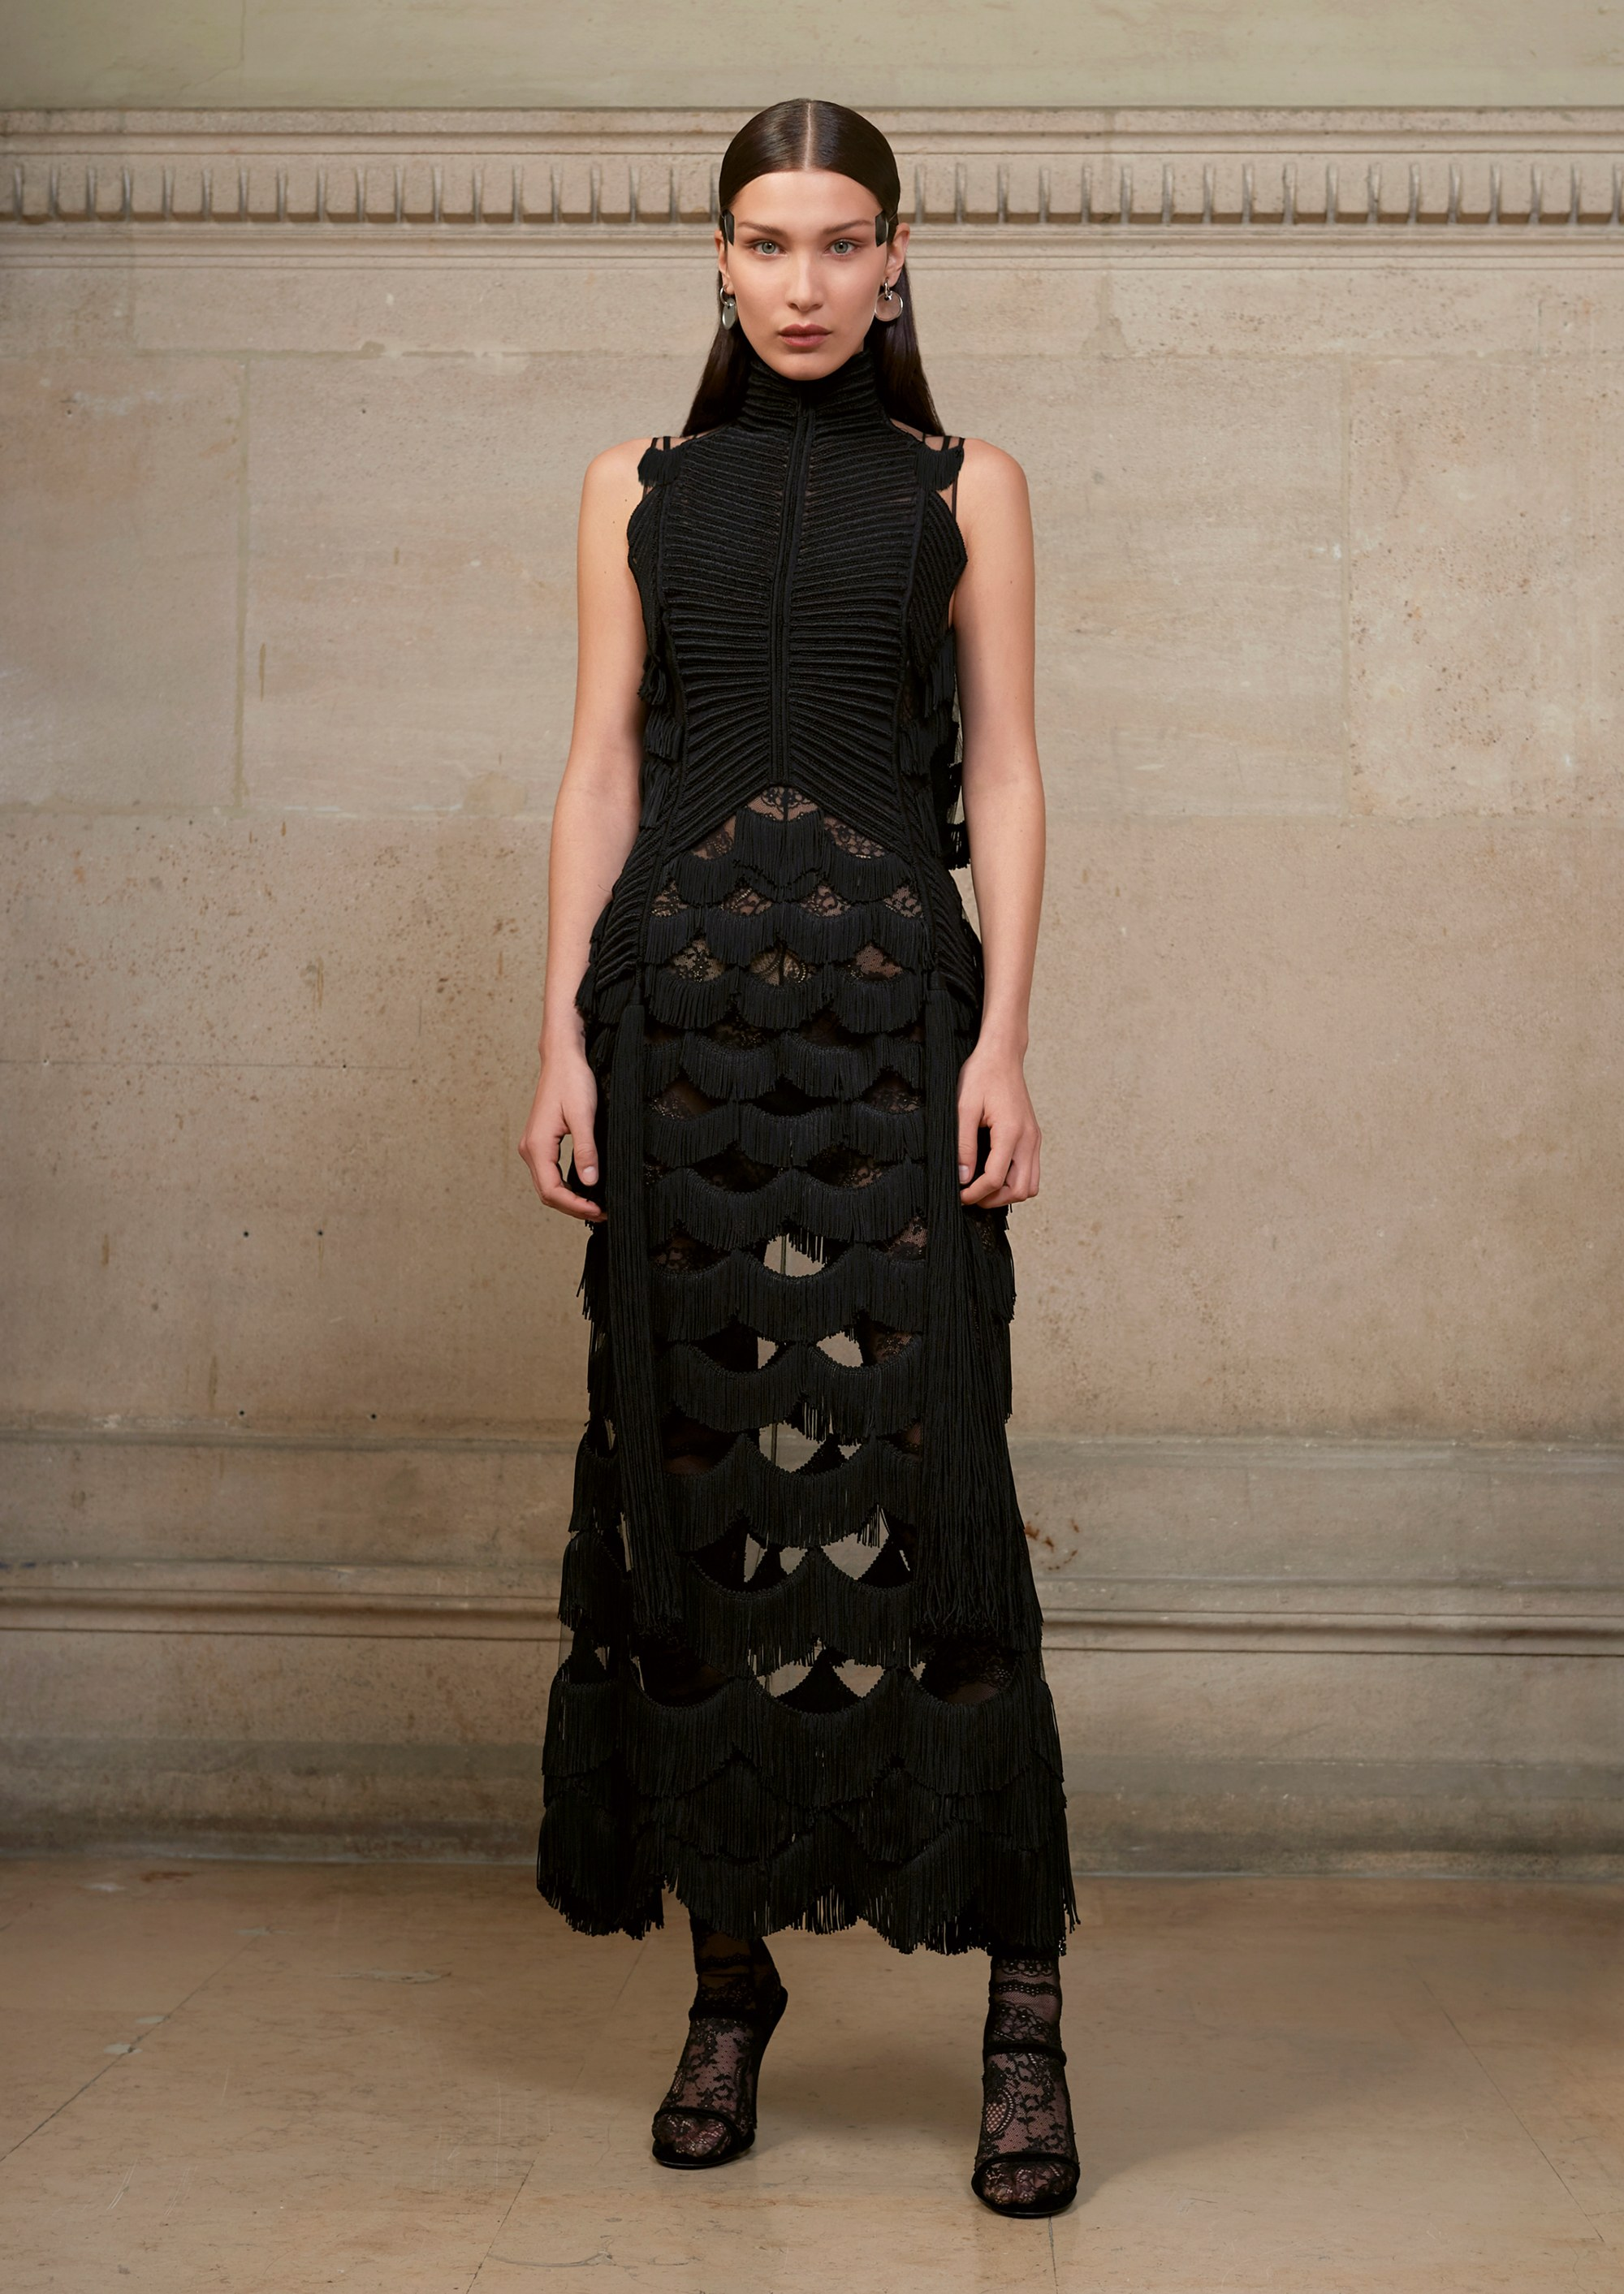 11-givenchy-couture-spring-2017.jpg